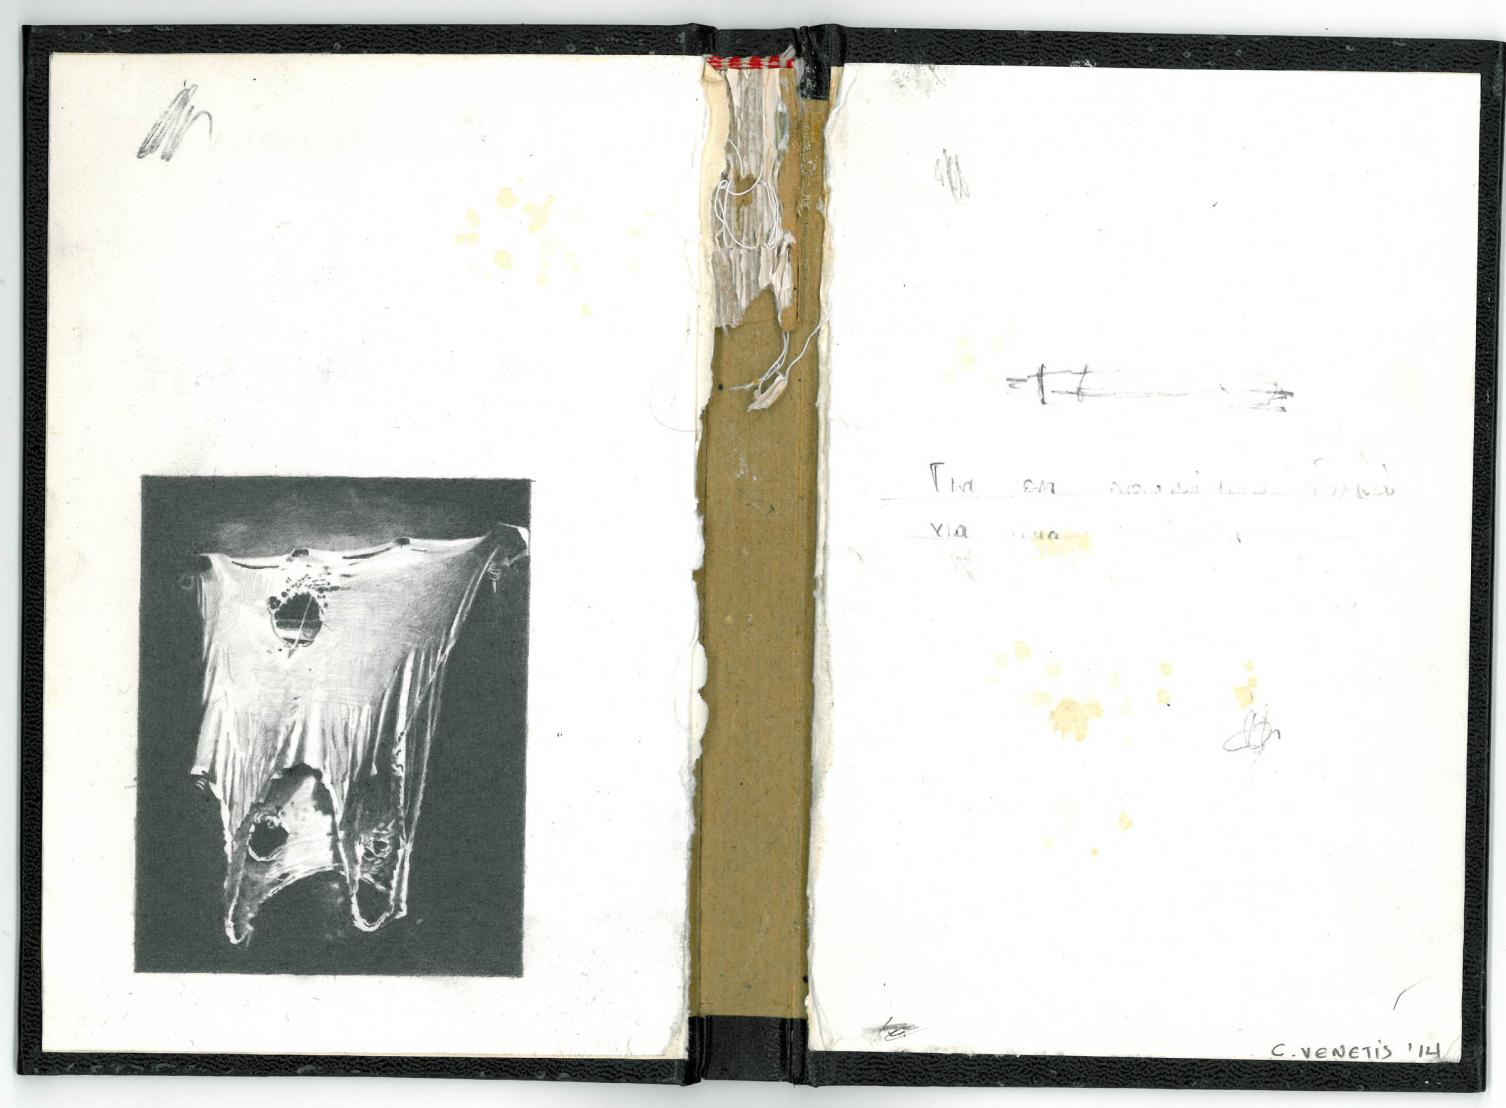 Christos Venetis, Anemic Archives Series, pencil on used book covers, 21,5 x 30 cm, 2013-15